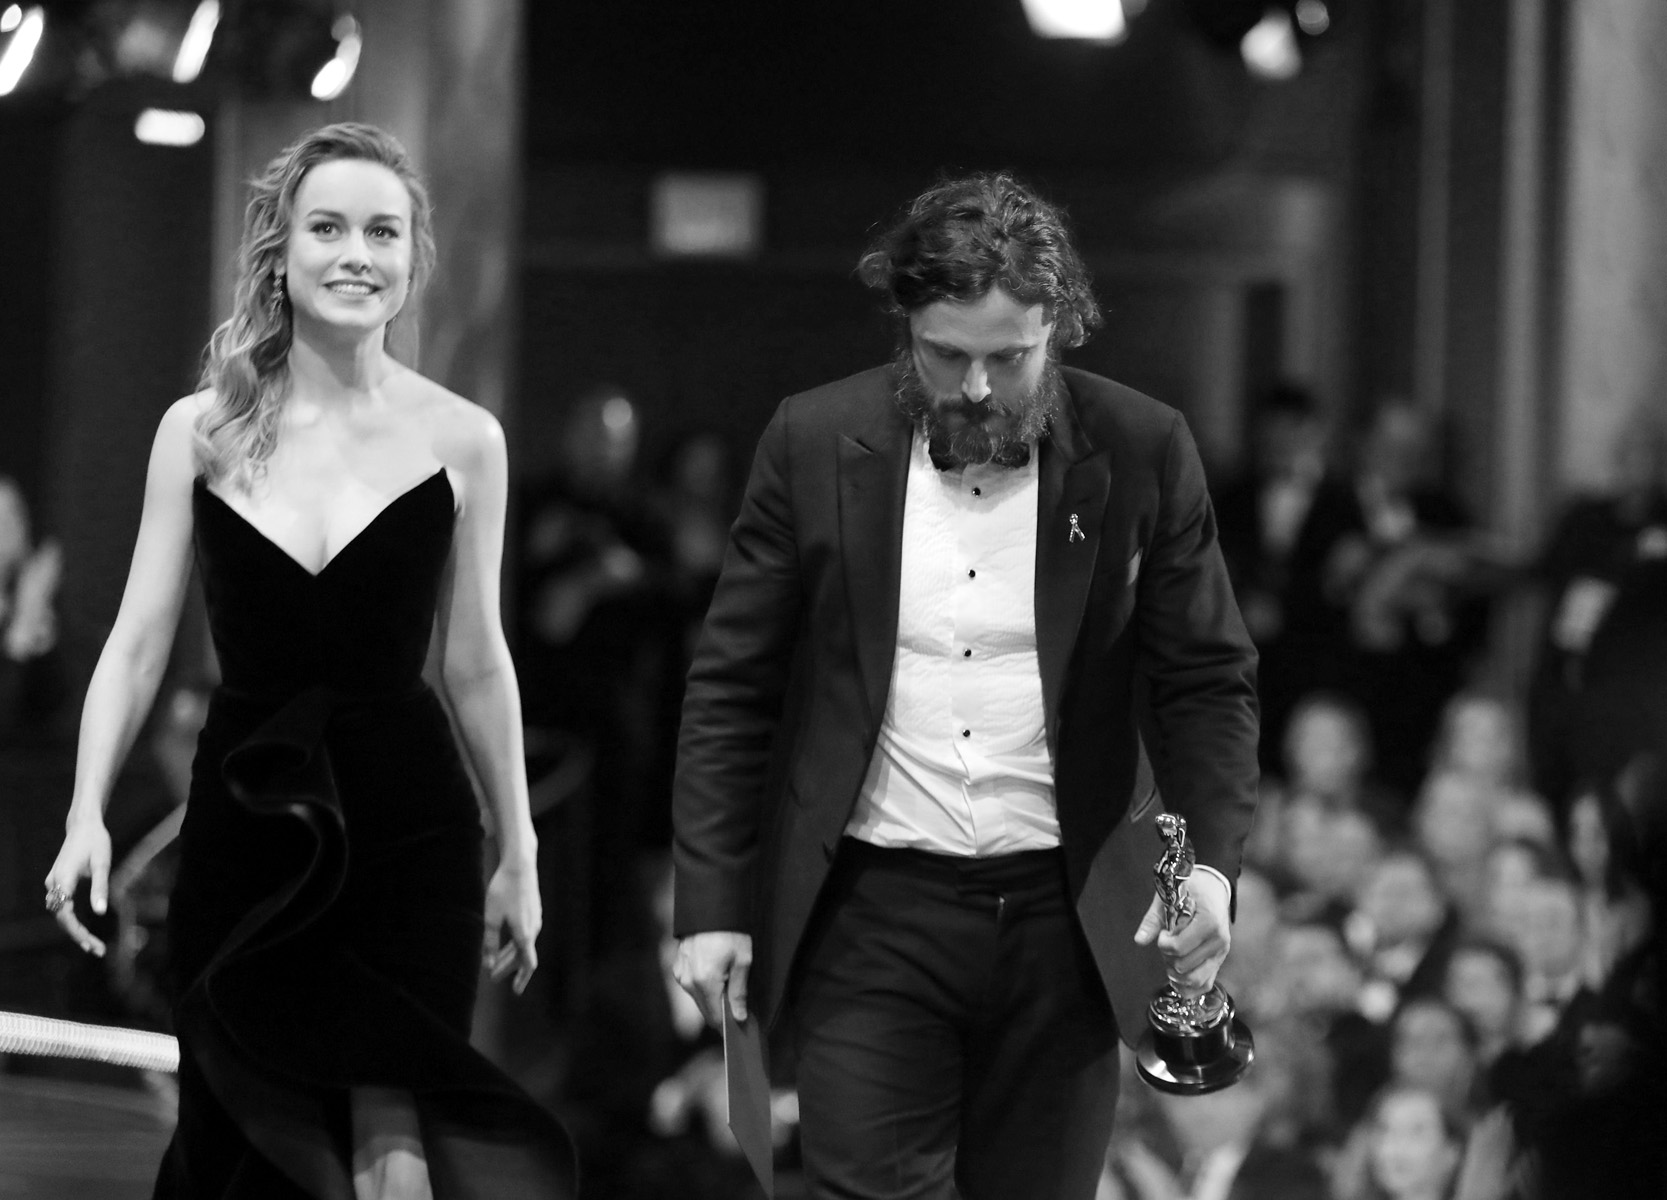 """Brie Larson, left, and Casey Affleck, winner of the award for best actor in a leading role for """"Manchester by the Sea"""",  exit the stage at the Oscars on Sunday, Feb. 26, 2017, at the Dolby Theatre in Los Angeles. (Photo by Matt Sayles/Invision/AP)"""